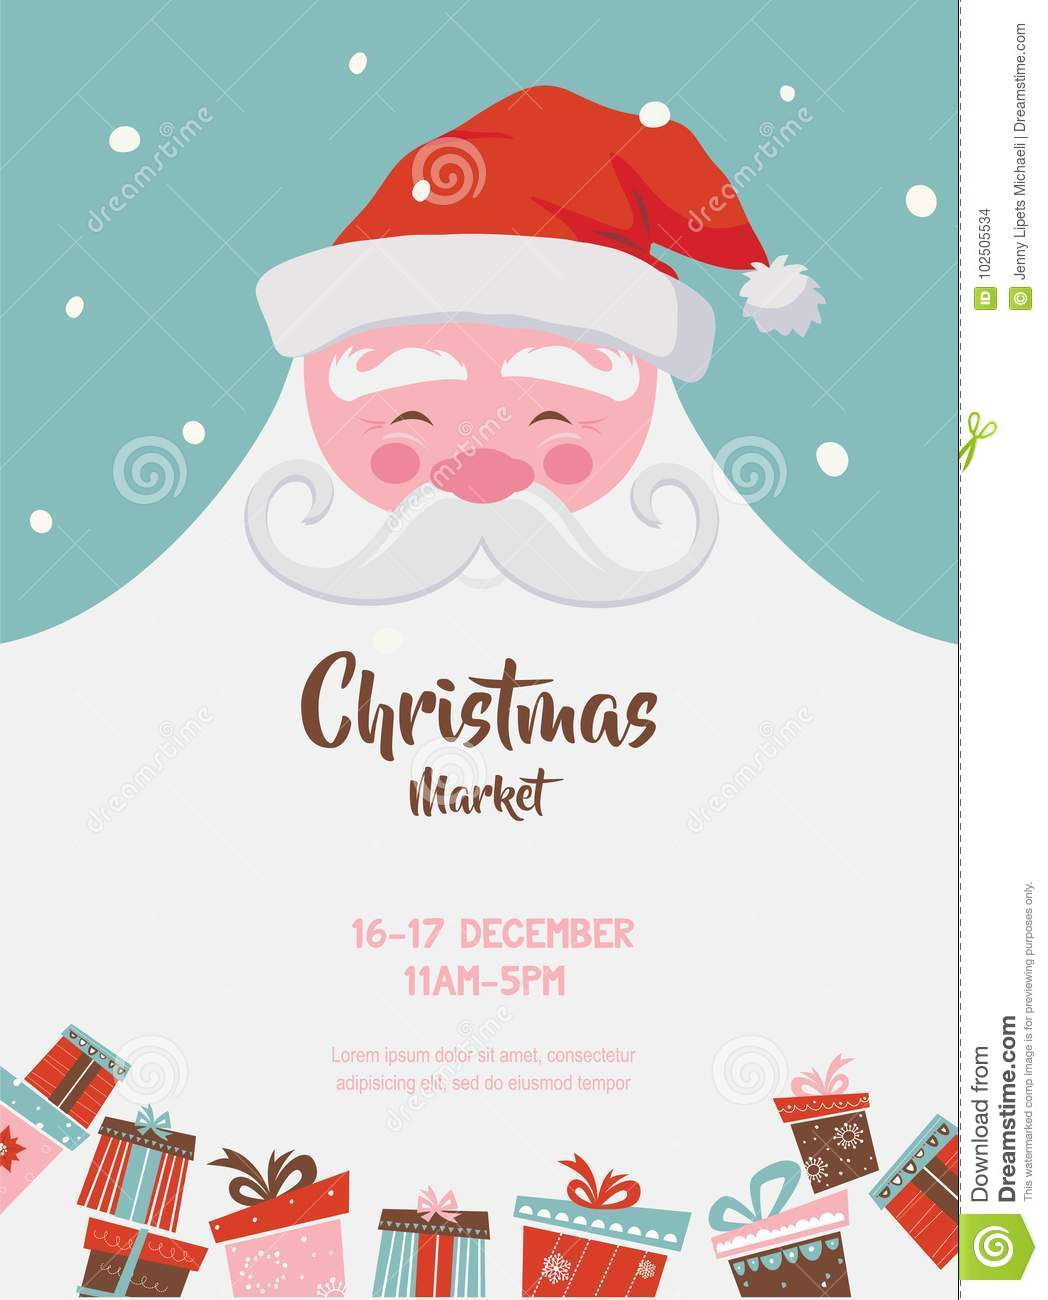 Christmas Market Poster With Santa And Presents. Vector Illustration ...